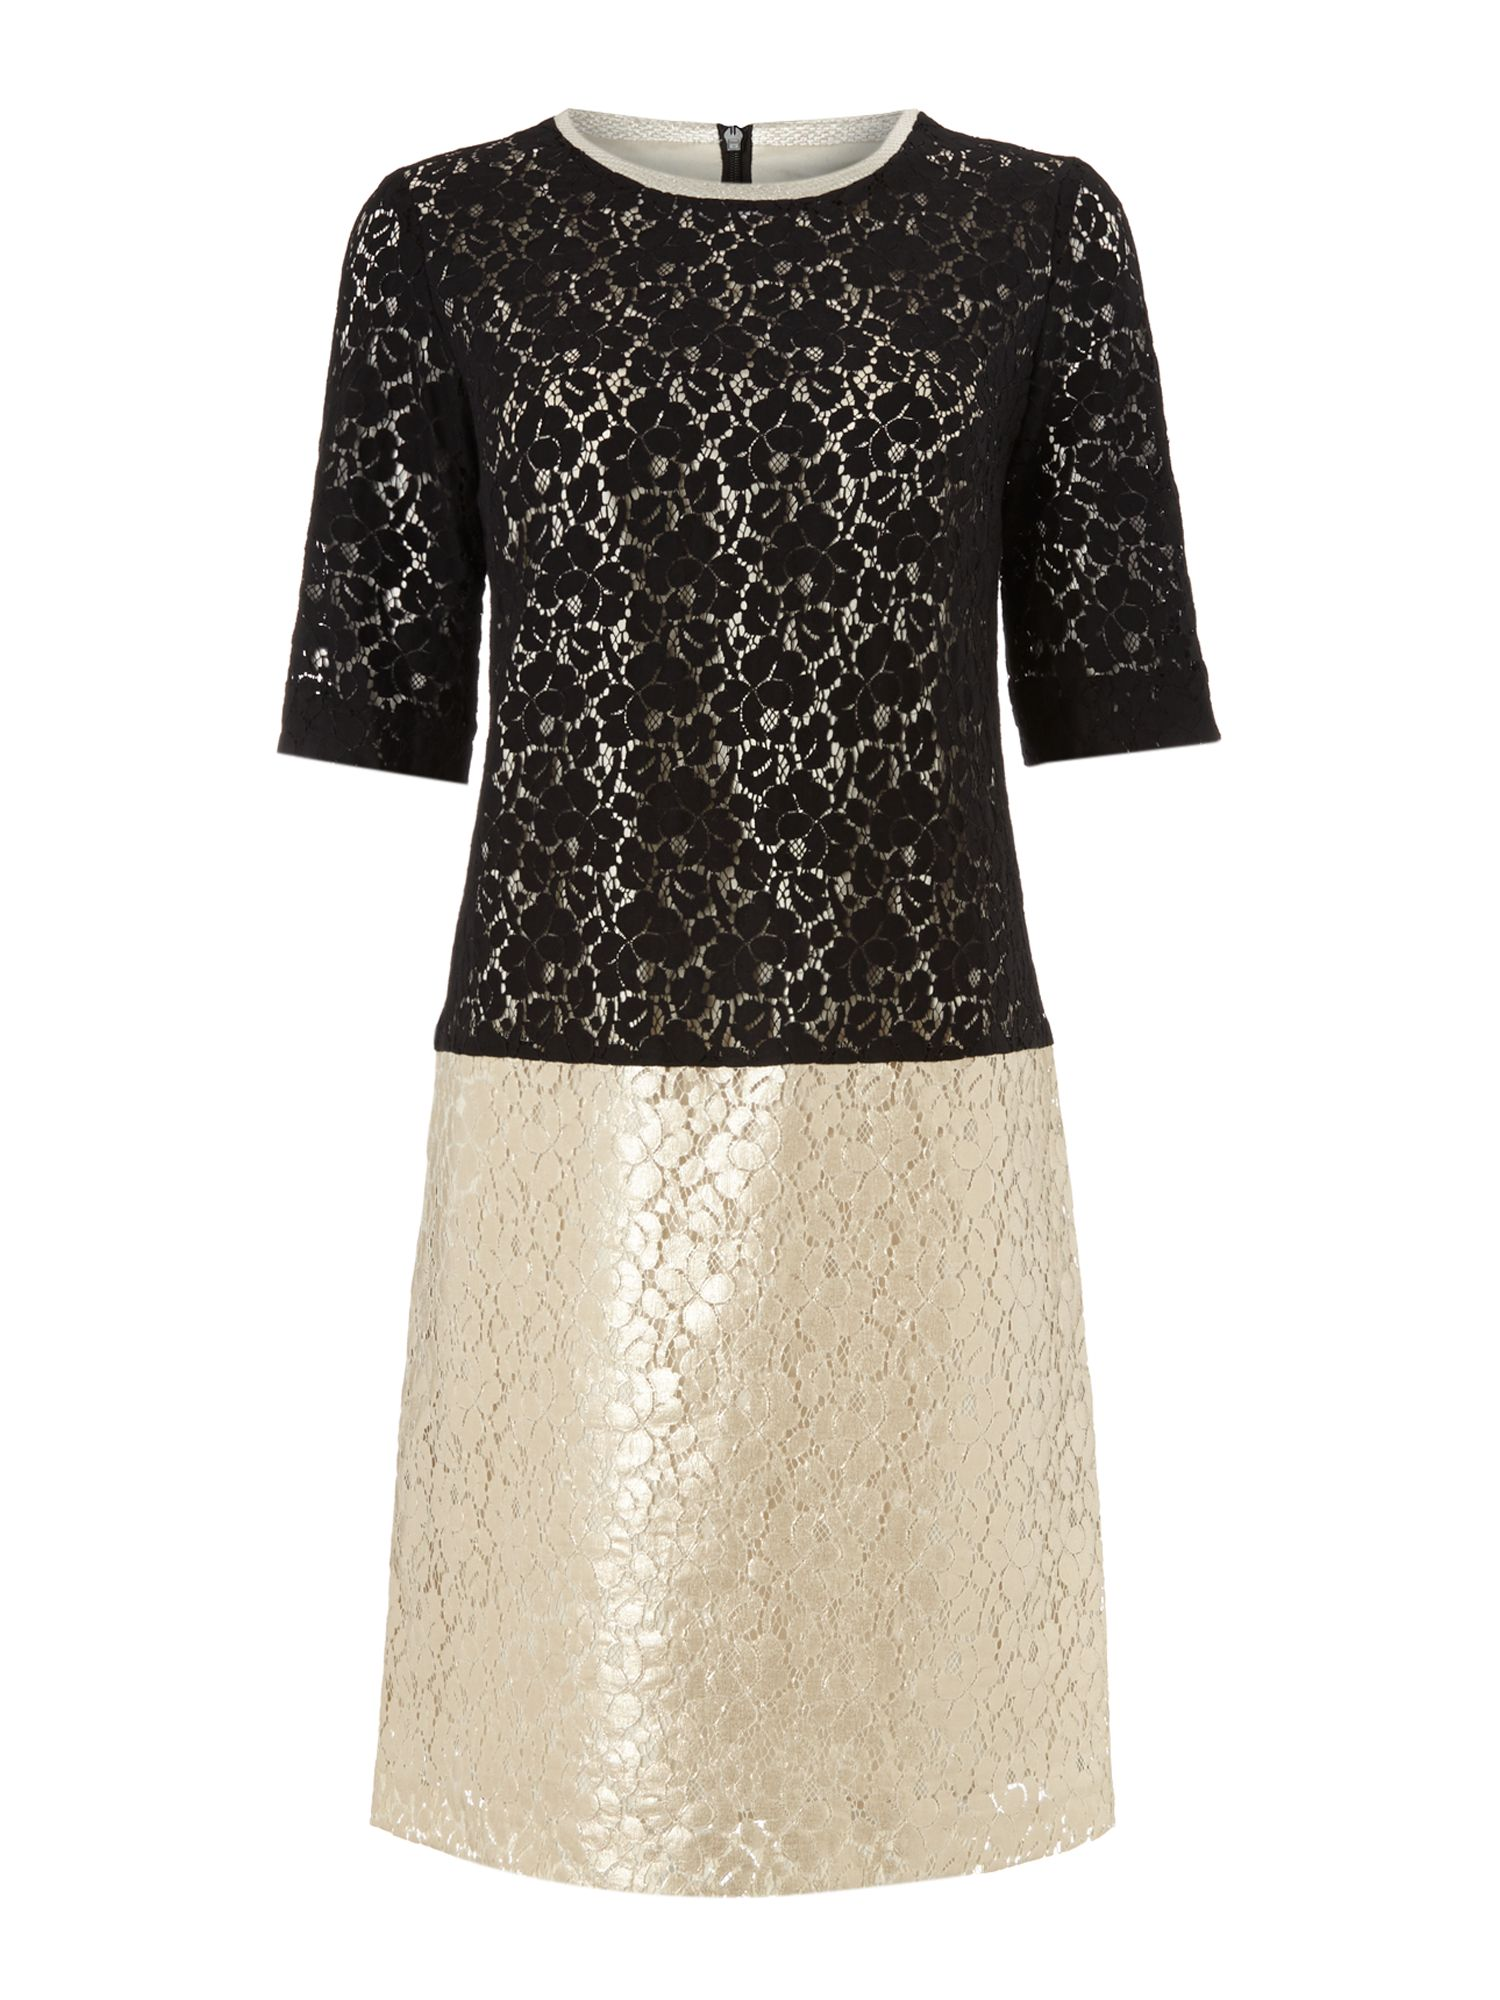 Lace shift occasion dress